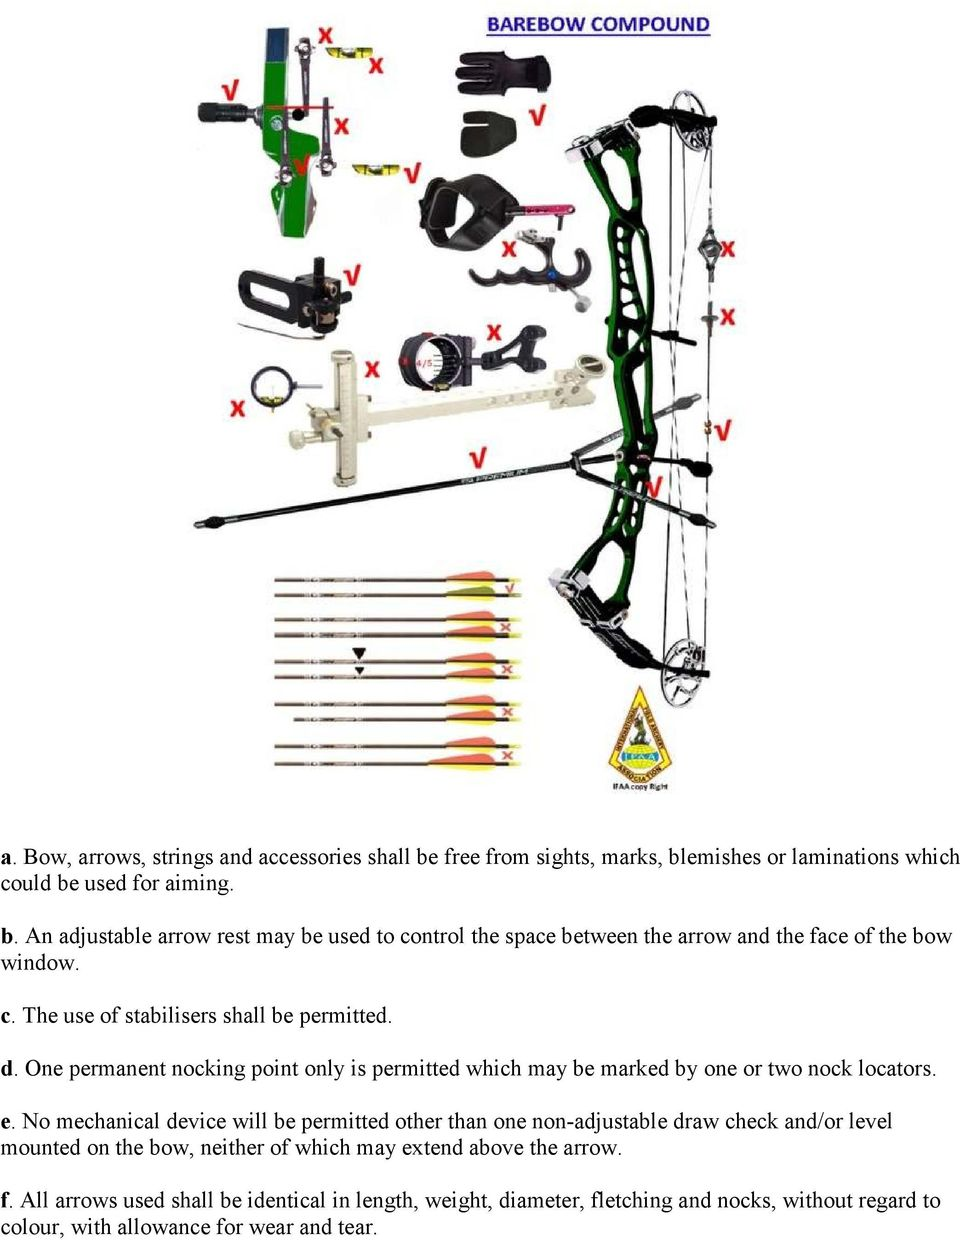 No mechanical device will be permitted other than one non-adjustable draw check and/or level mounted on the bow, neither of which may extend above the arrow. f.